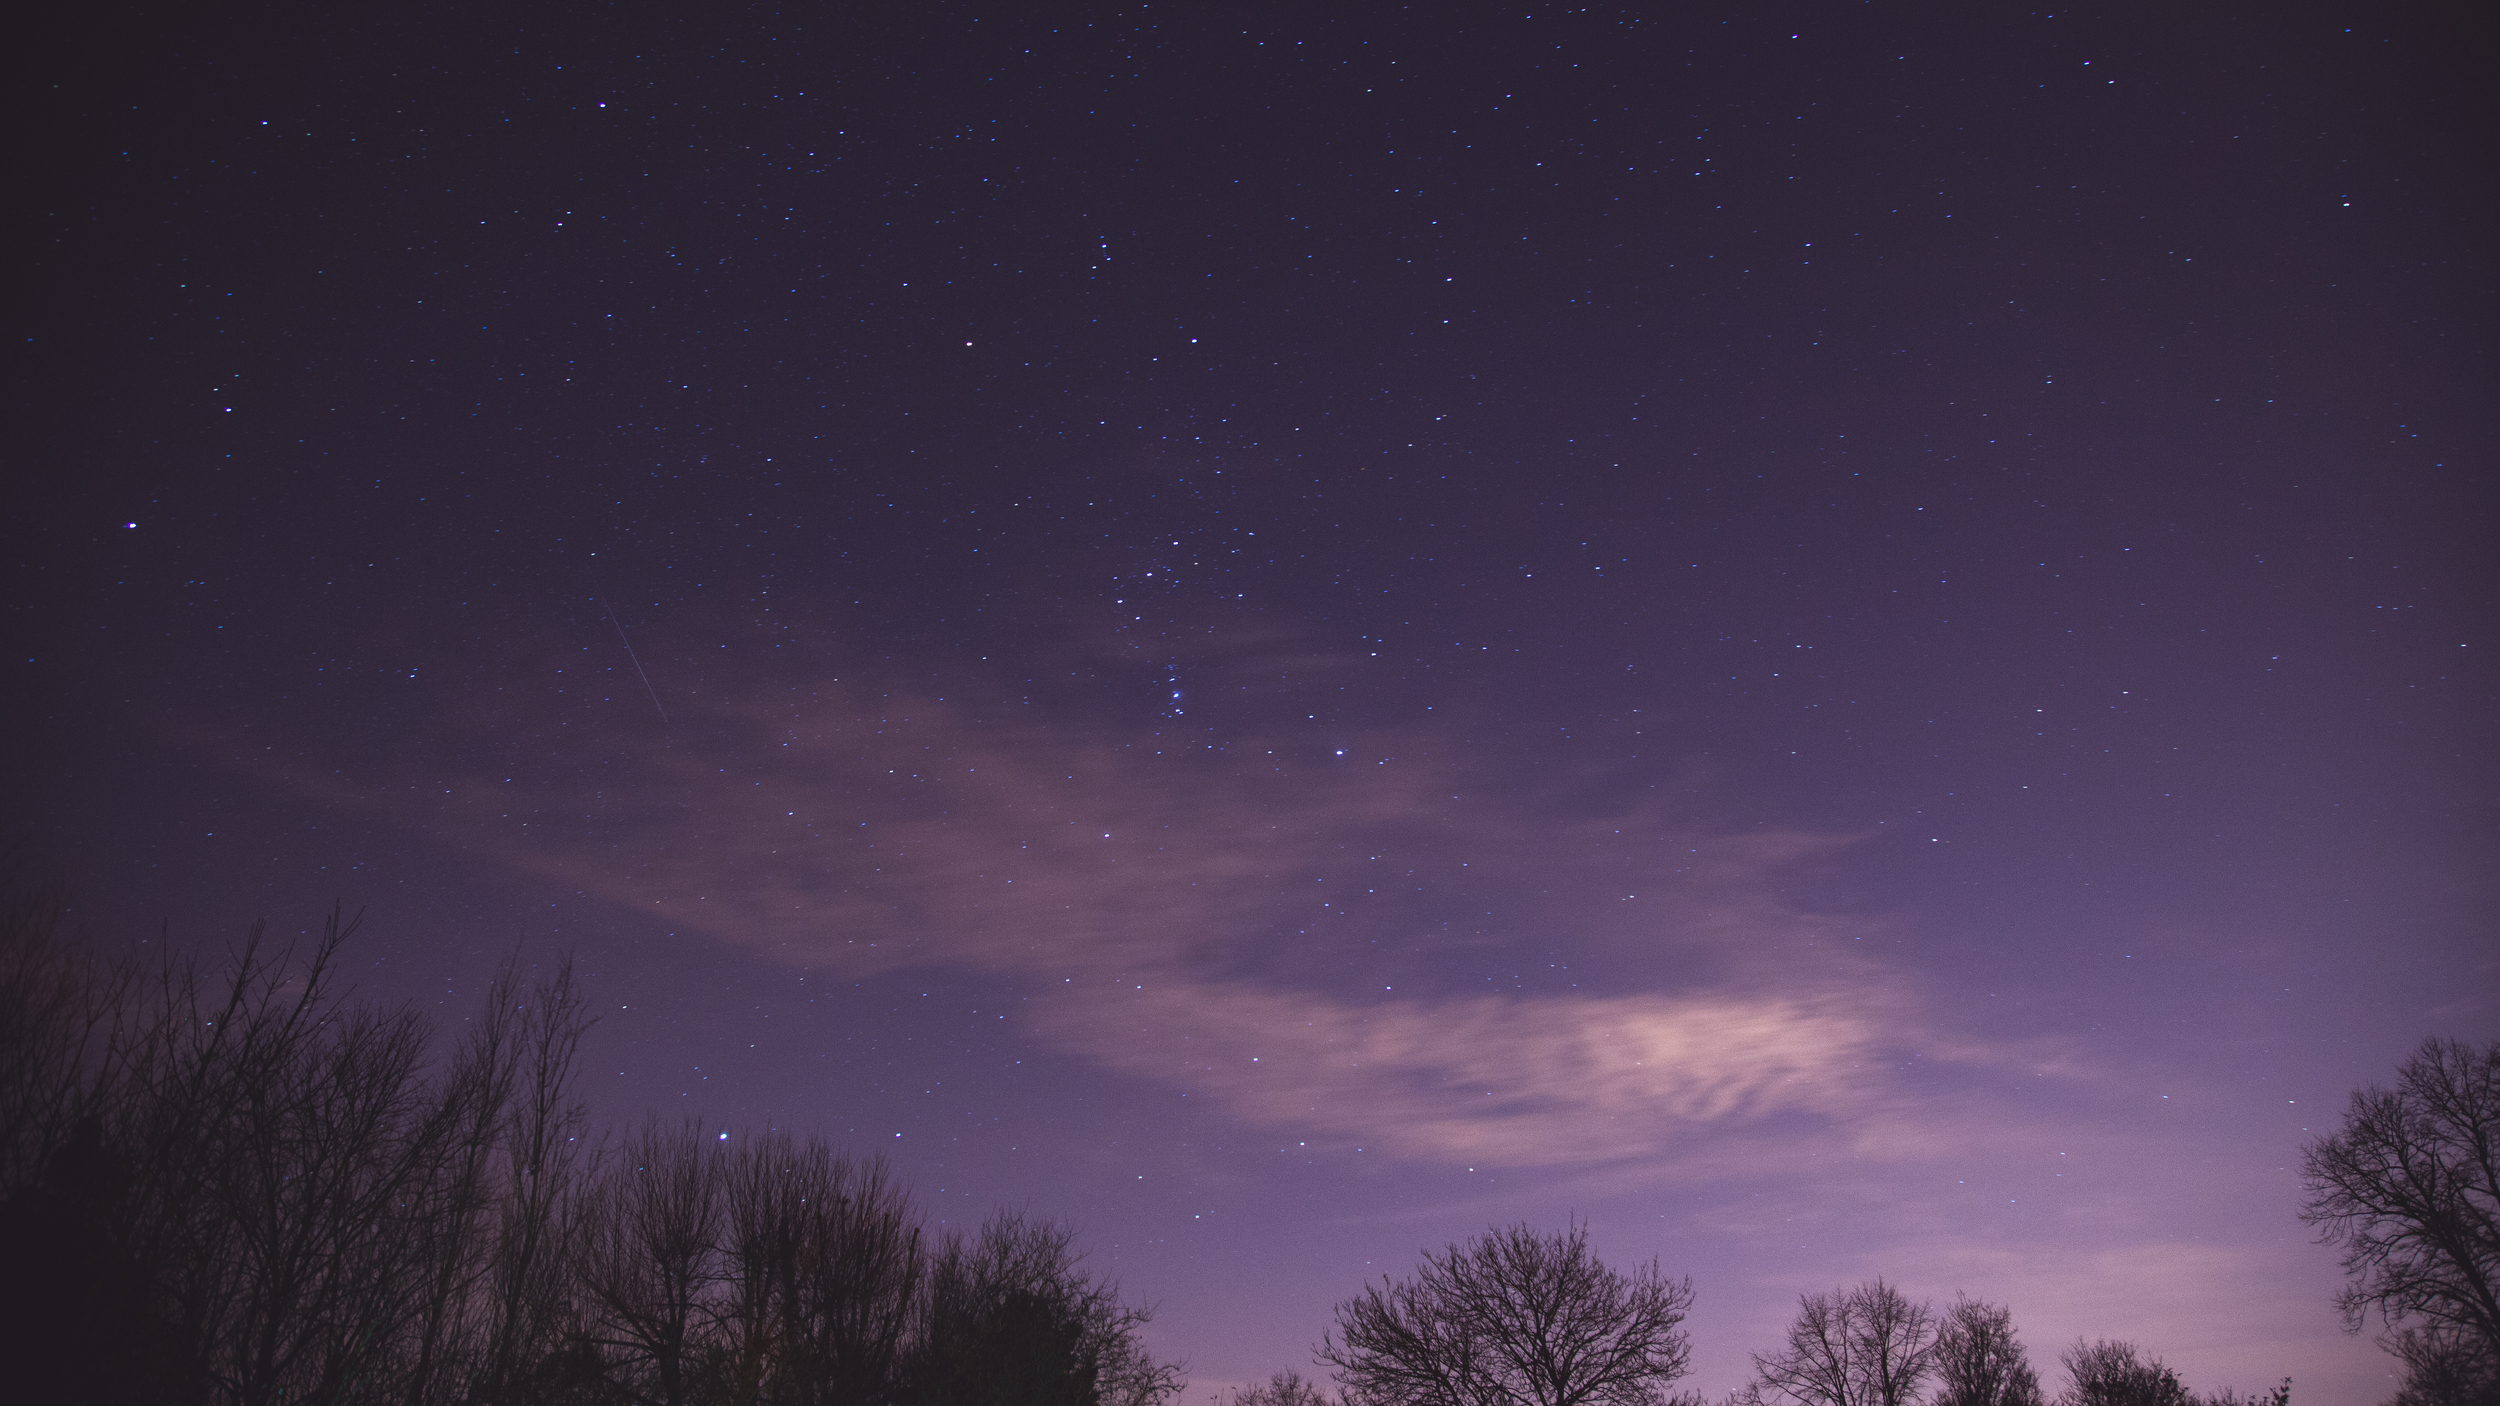 Usually cloud during the night ruins my images but I feel this one adds something.